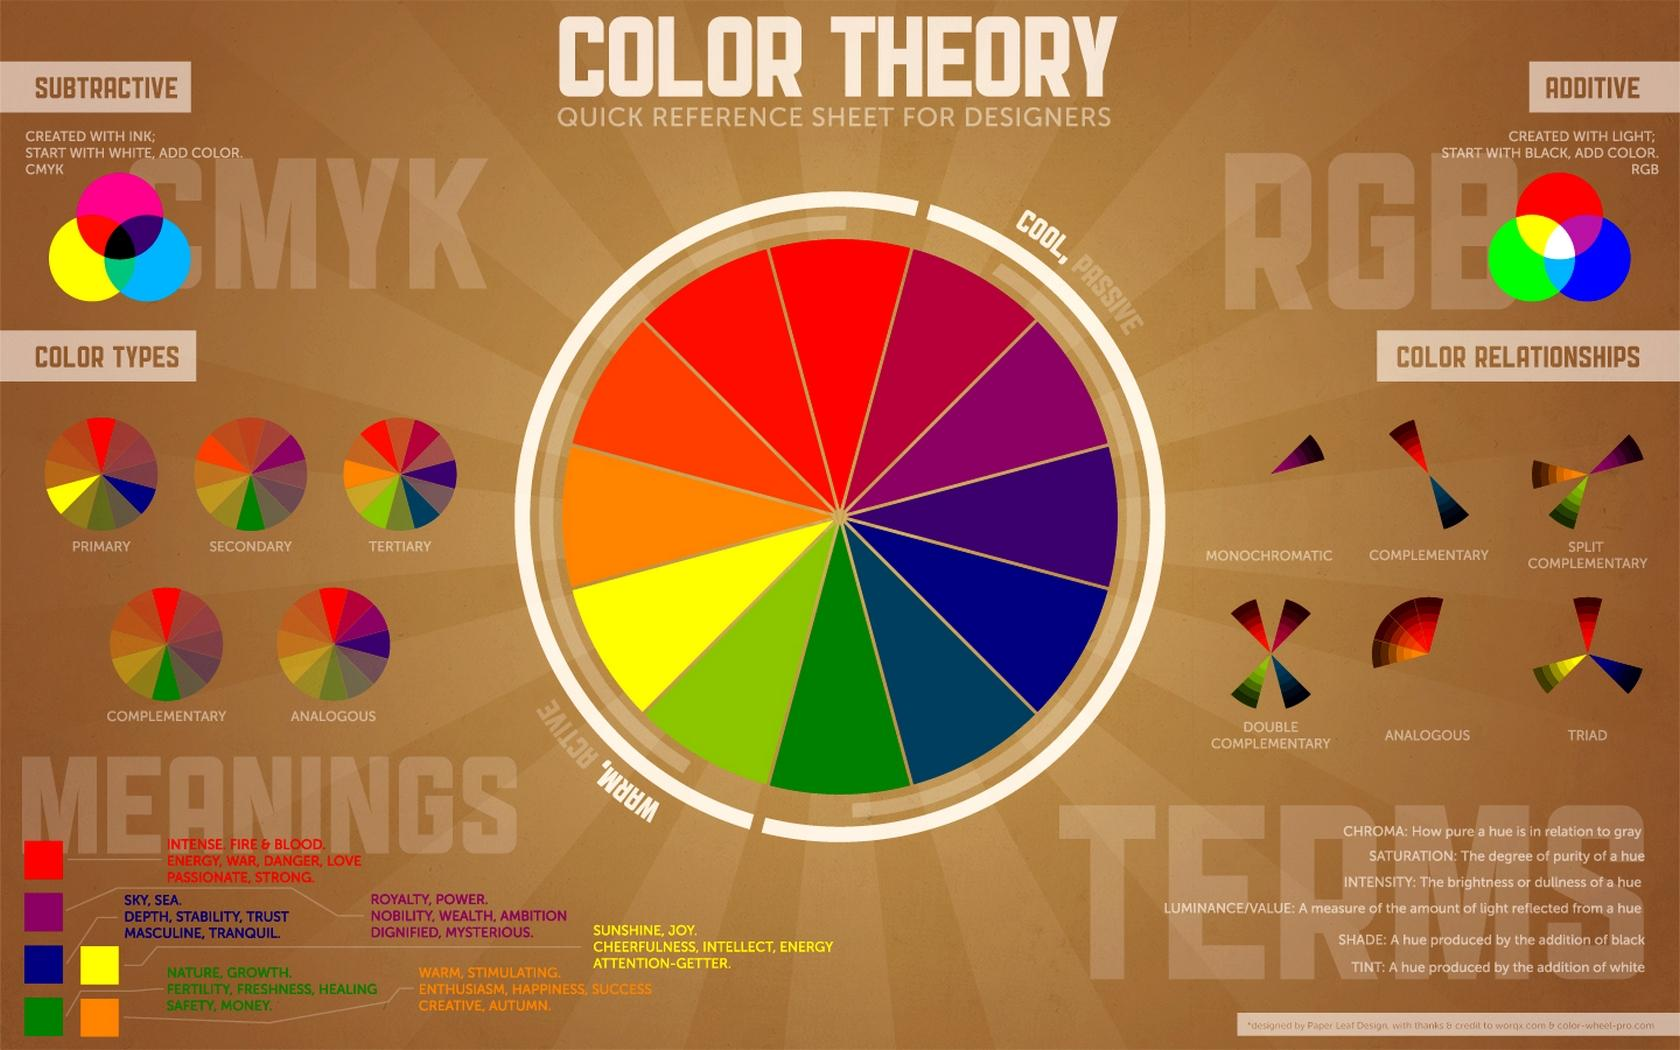 Game color theory - Artistisk Annat Bakgrund Download Image Game Color Theory